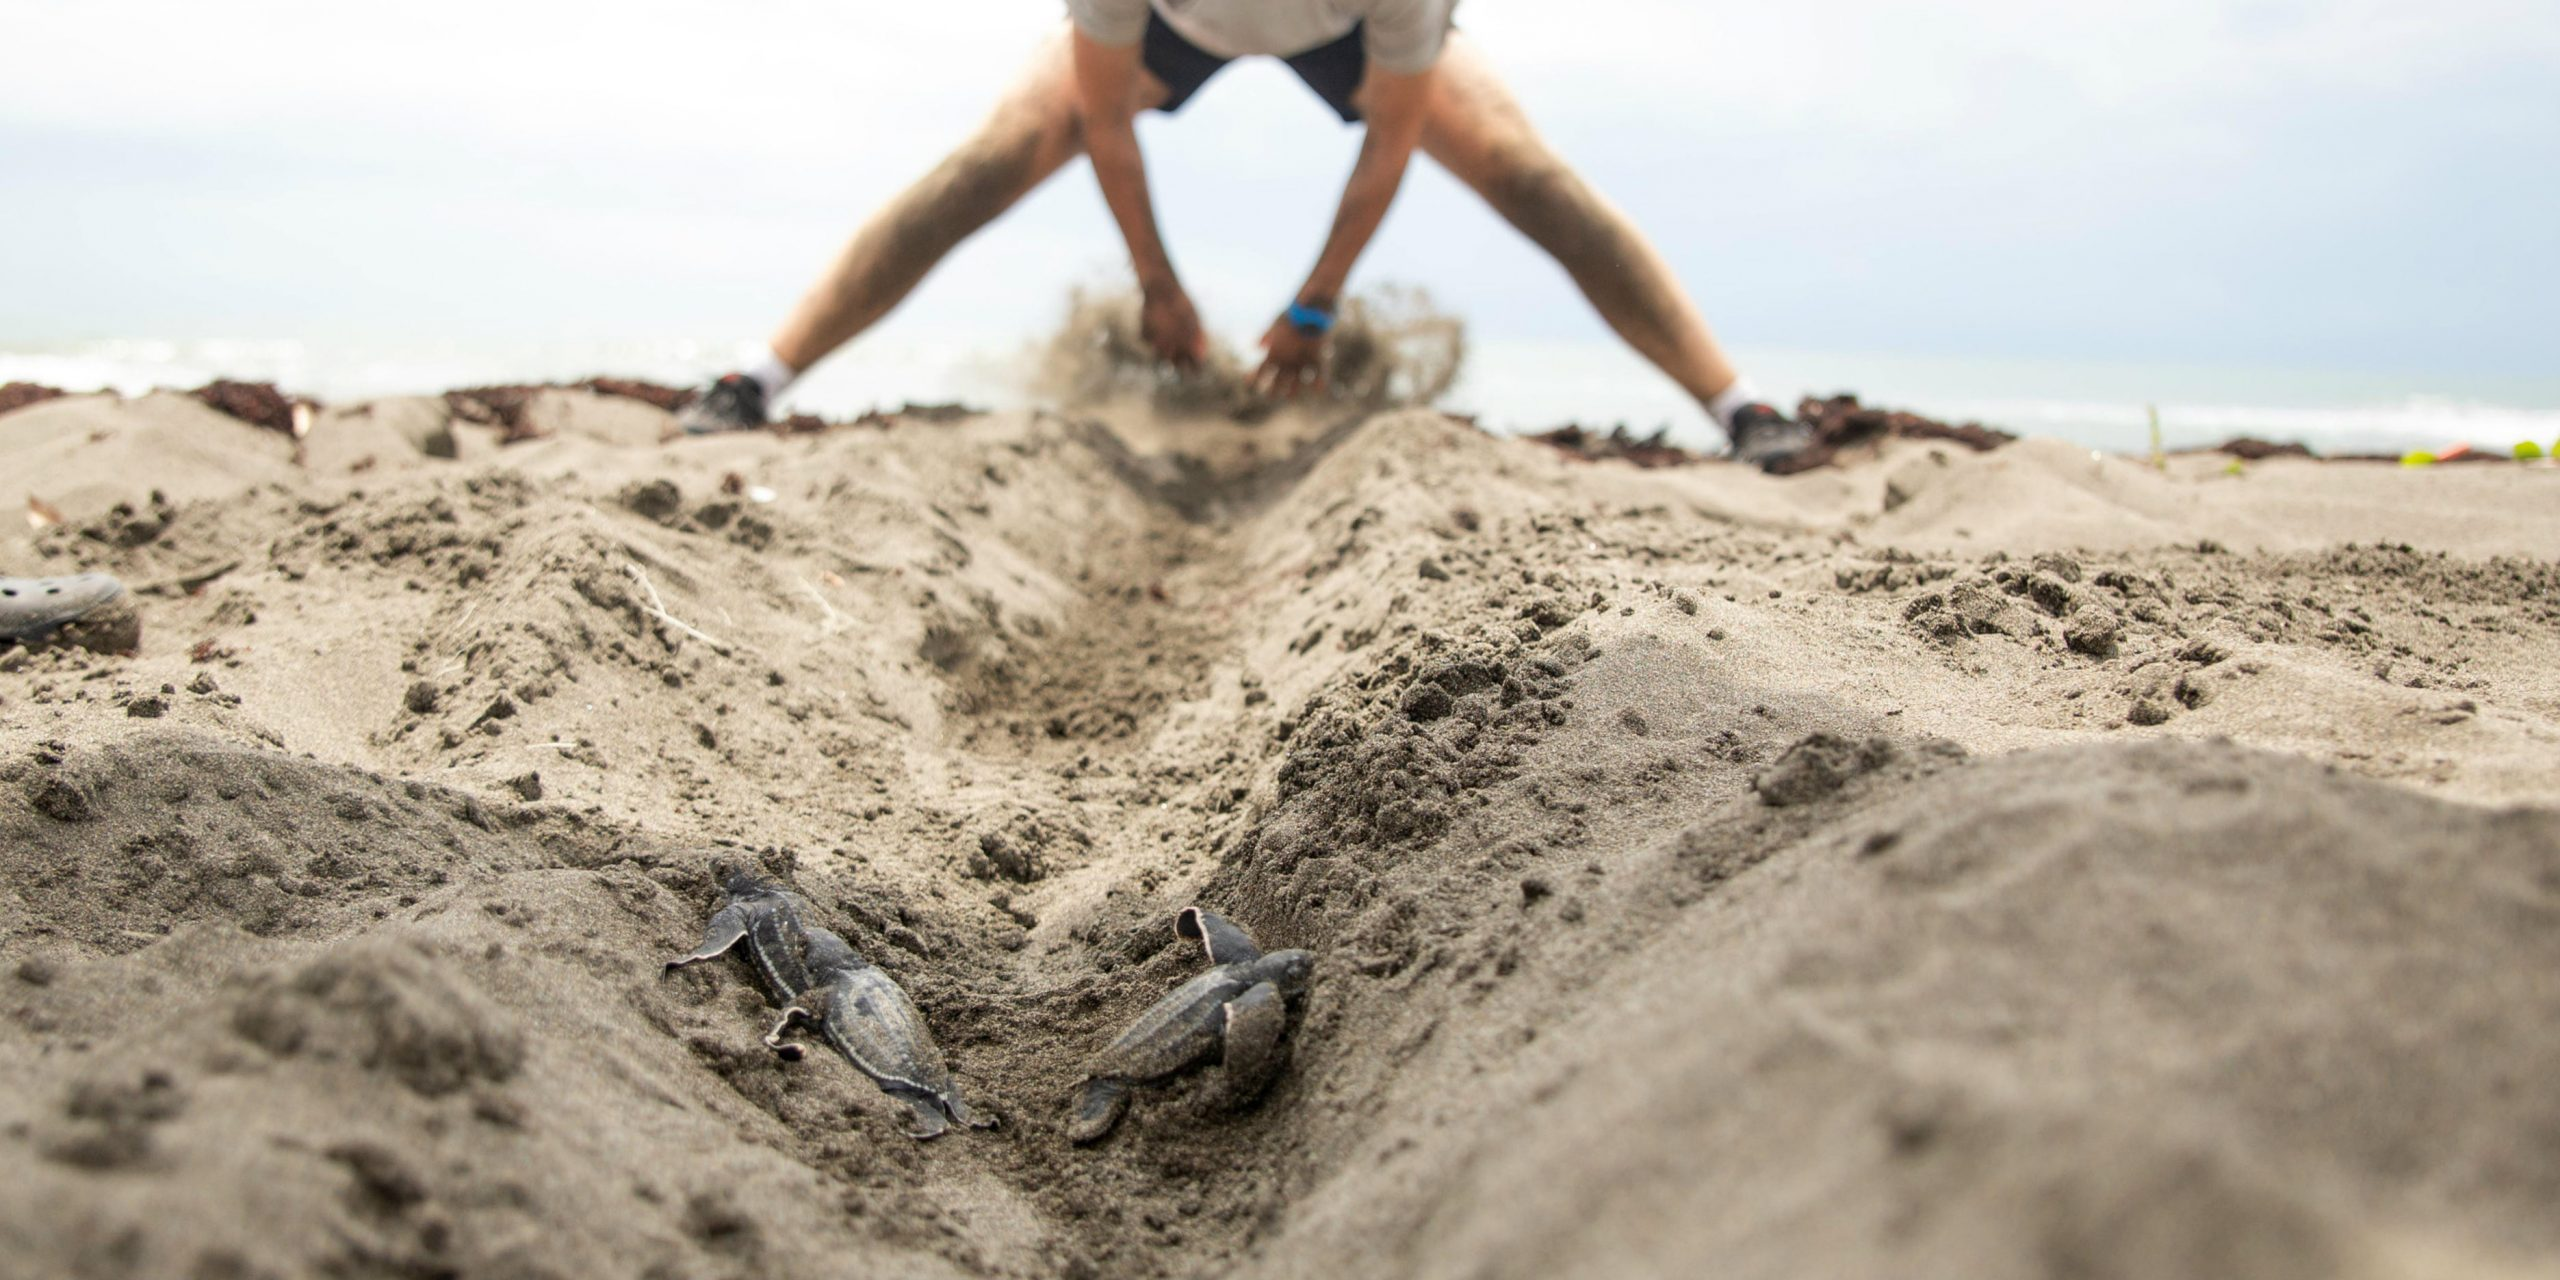 a marine conservation volunteer clears the path for a baby sea turtle